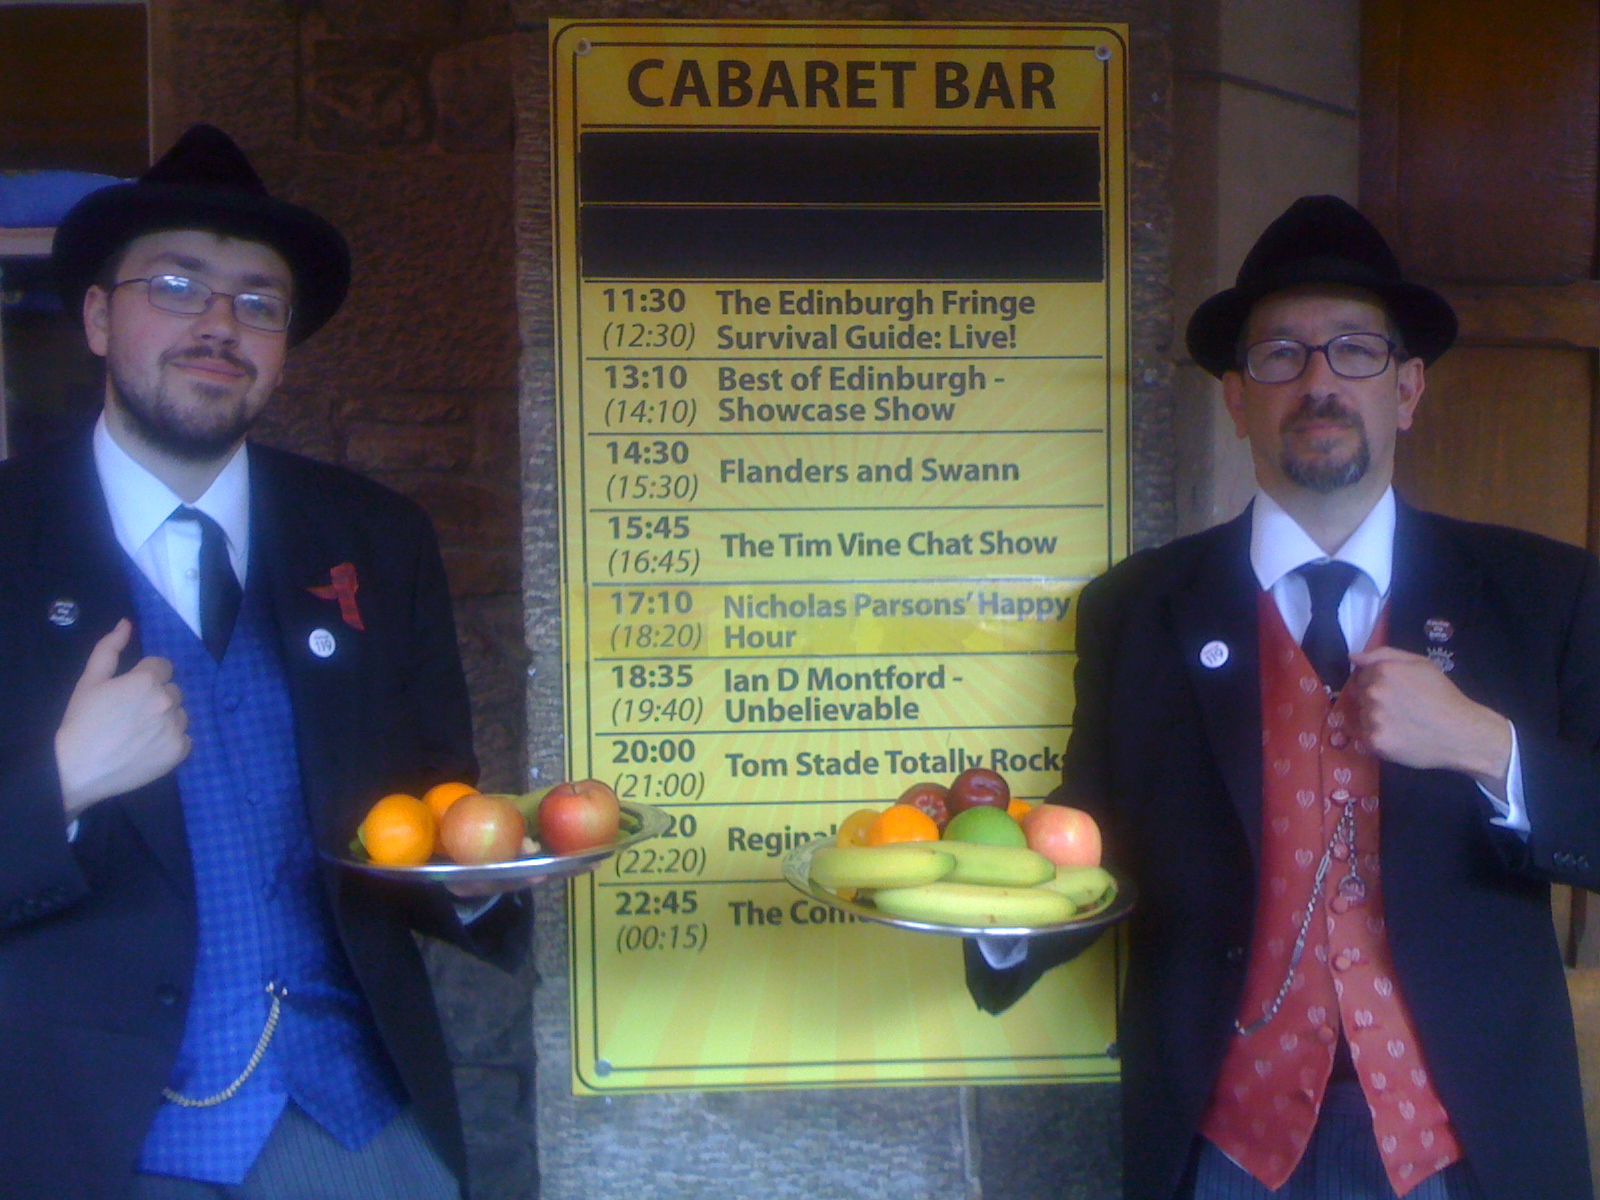 The Butlers welcome audiences to the Edinburgh Fringe Survival Guide: Live!